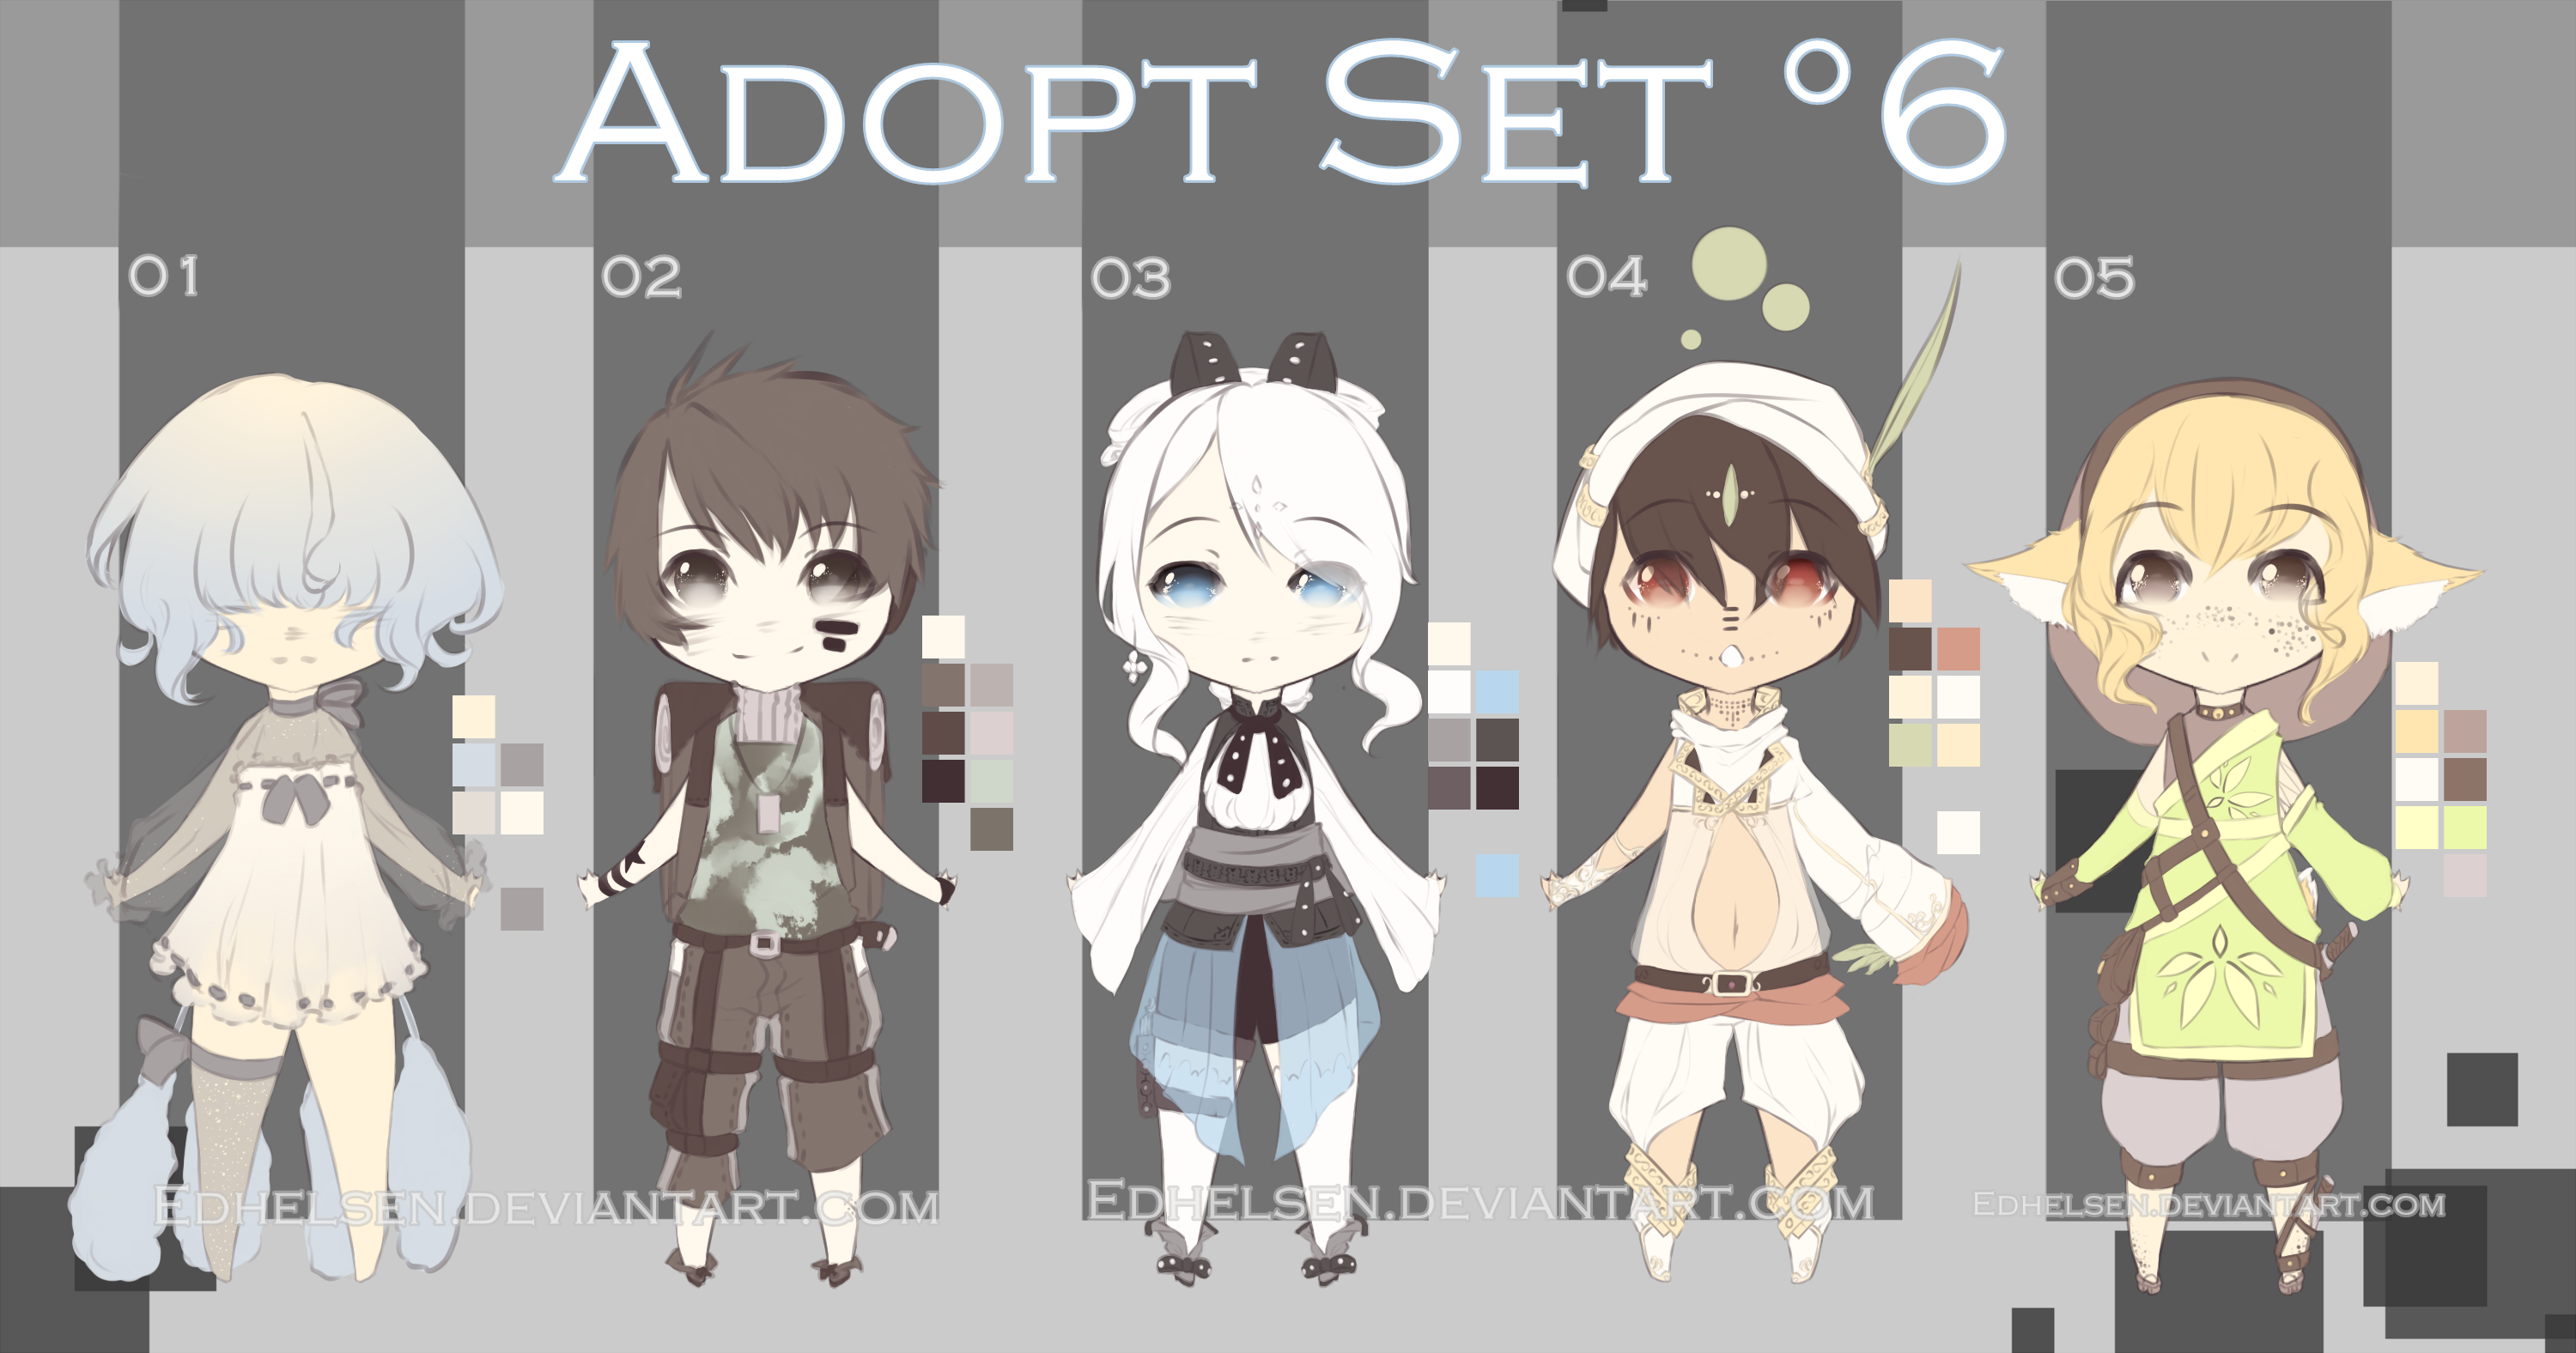 -ADOPT SET'6- OPEN 4/5 by EdhelSen